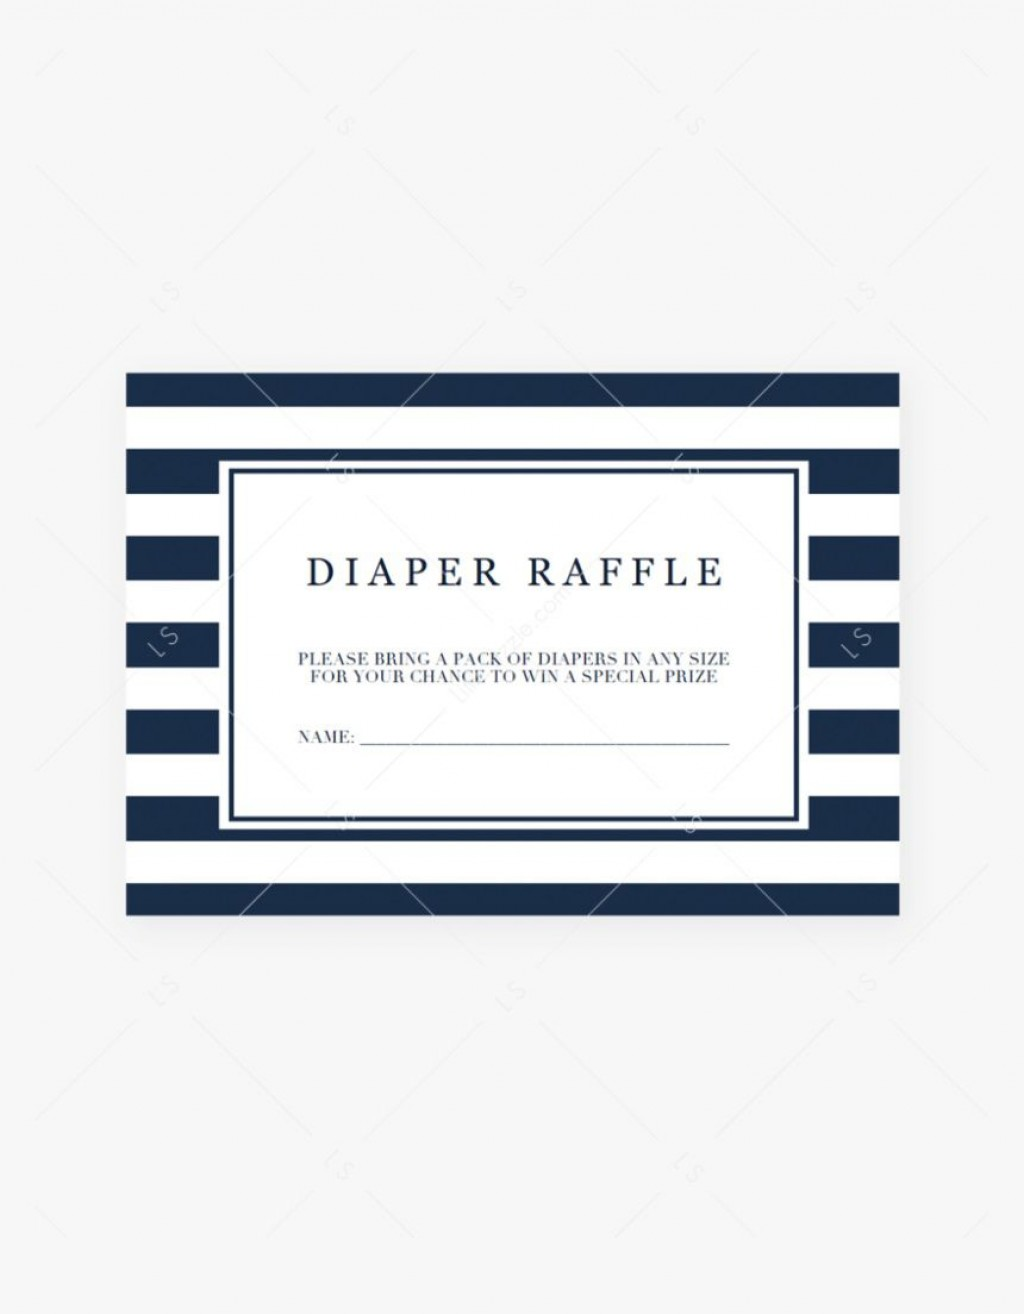 000 Formidable Diaper Raffle Ticket Template Concept  Boy Free Printable Print Black And WhiteLarge